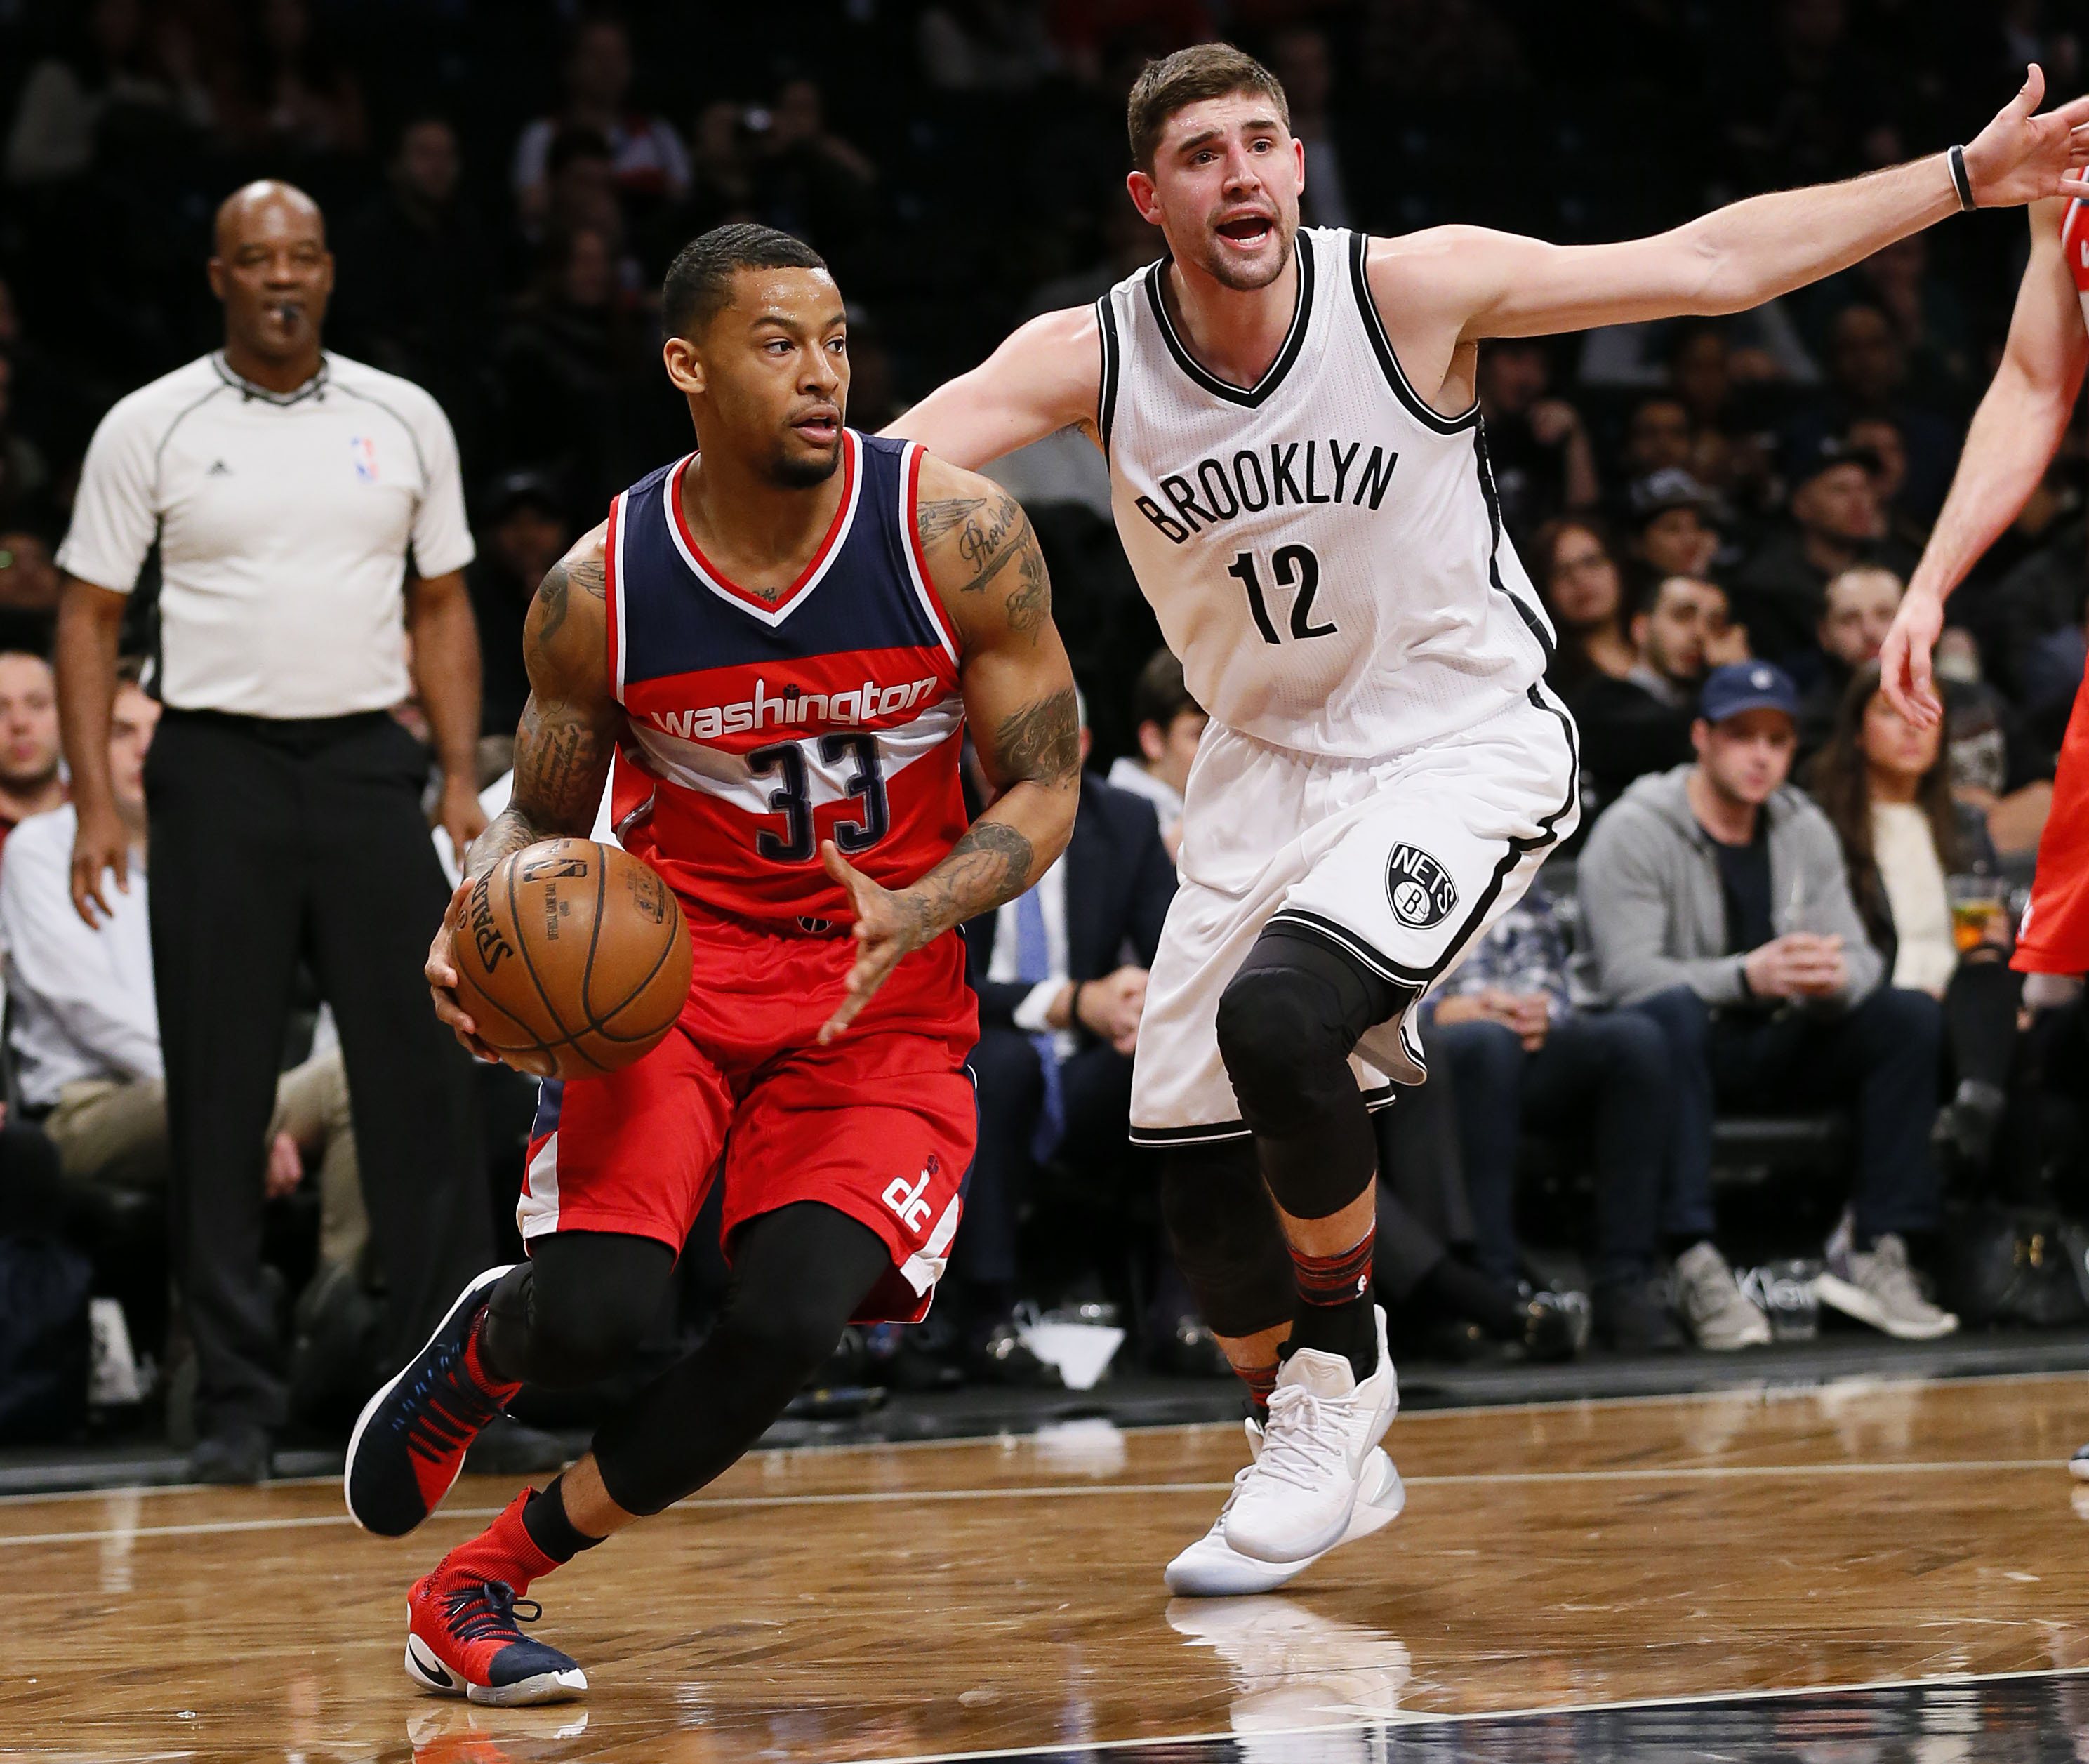 Trey Burke: NBA Vet Describes His Second Opportunity In The Making